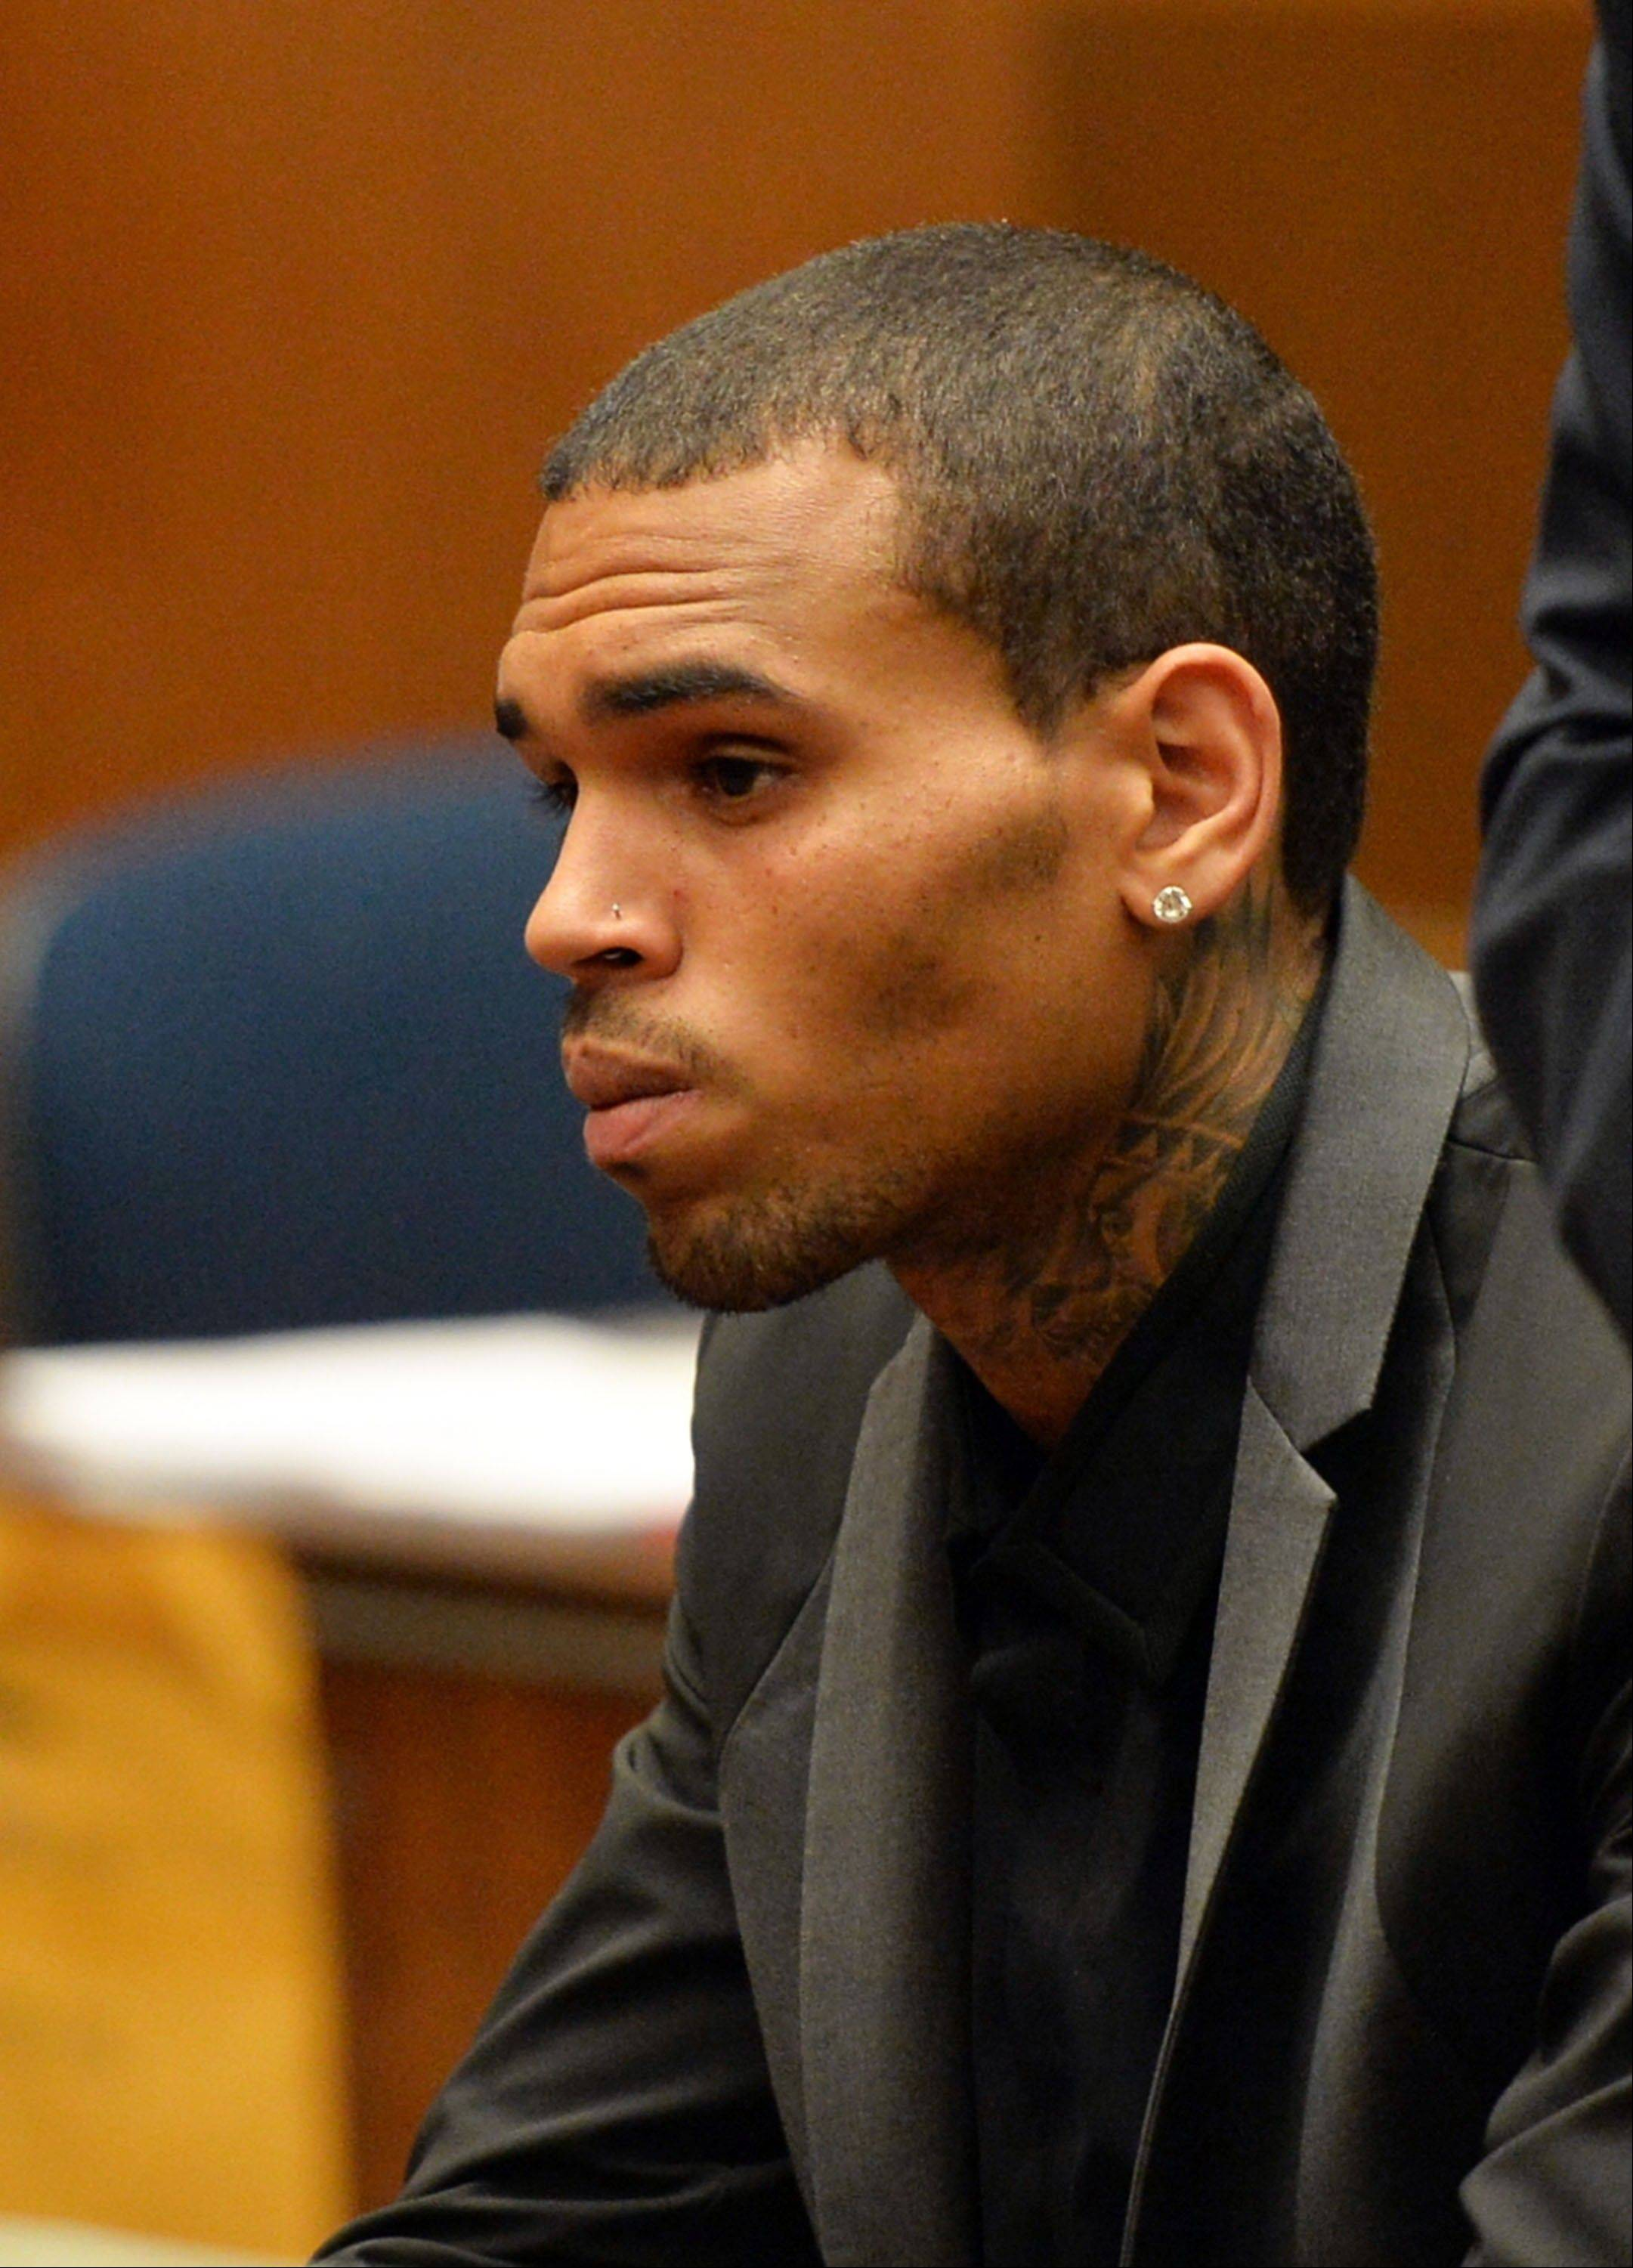 R&B singer Chris Brown appears during a court hearing at Los Angeles Superior Court Monday. A Los Angeles judge has revoked Brown�s probation after reading details of an alleged hit-and-run accident and his behavior afterward, but the singer was not ordered to jail.